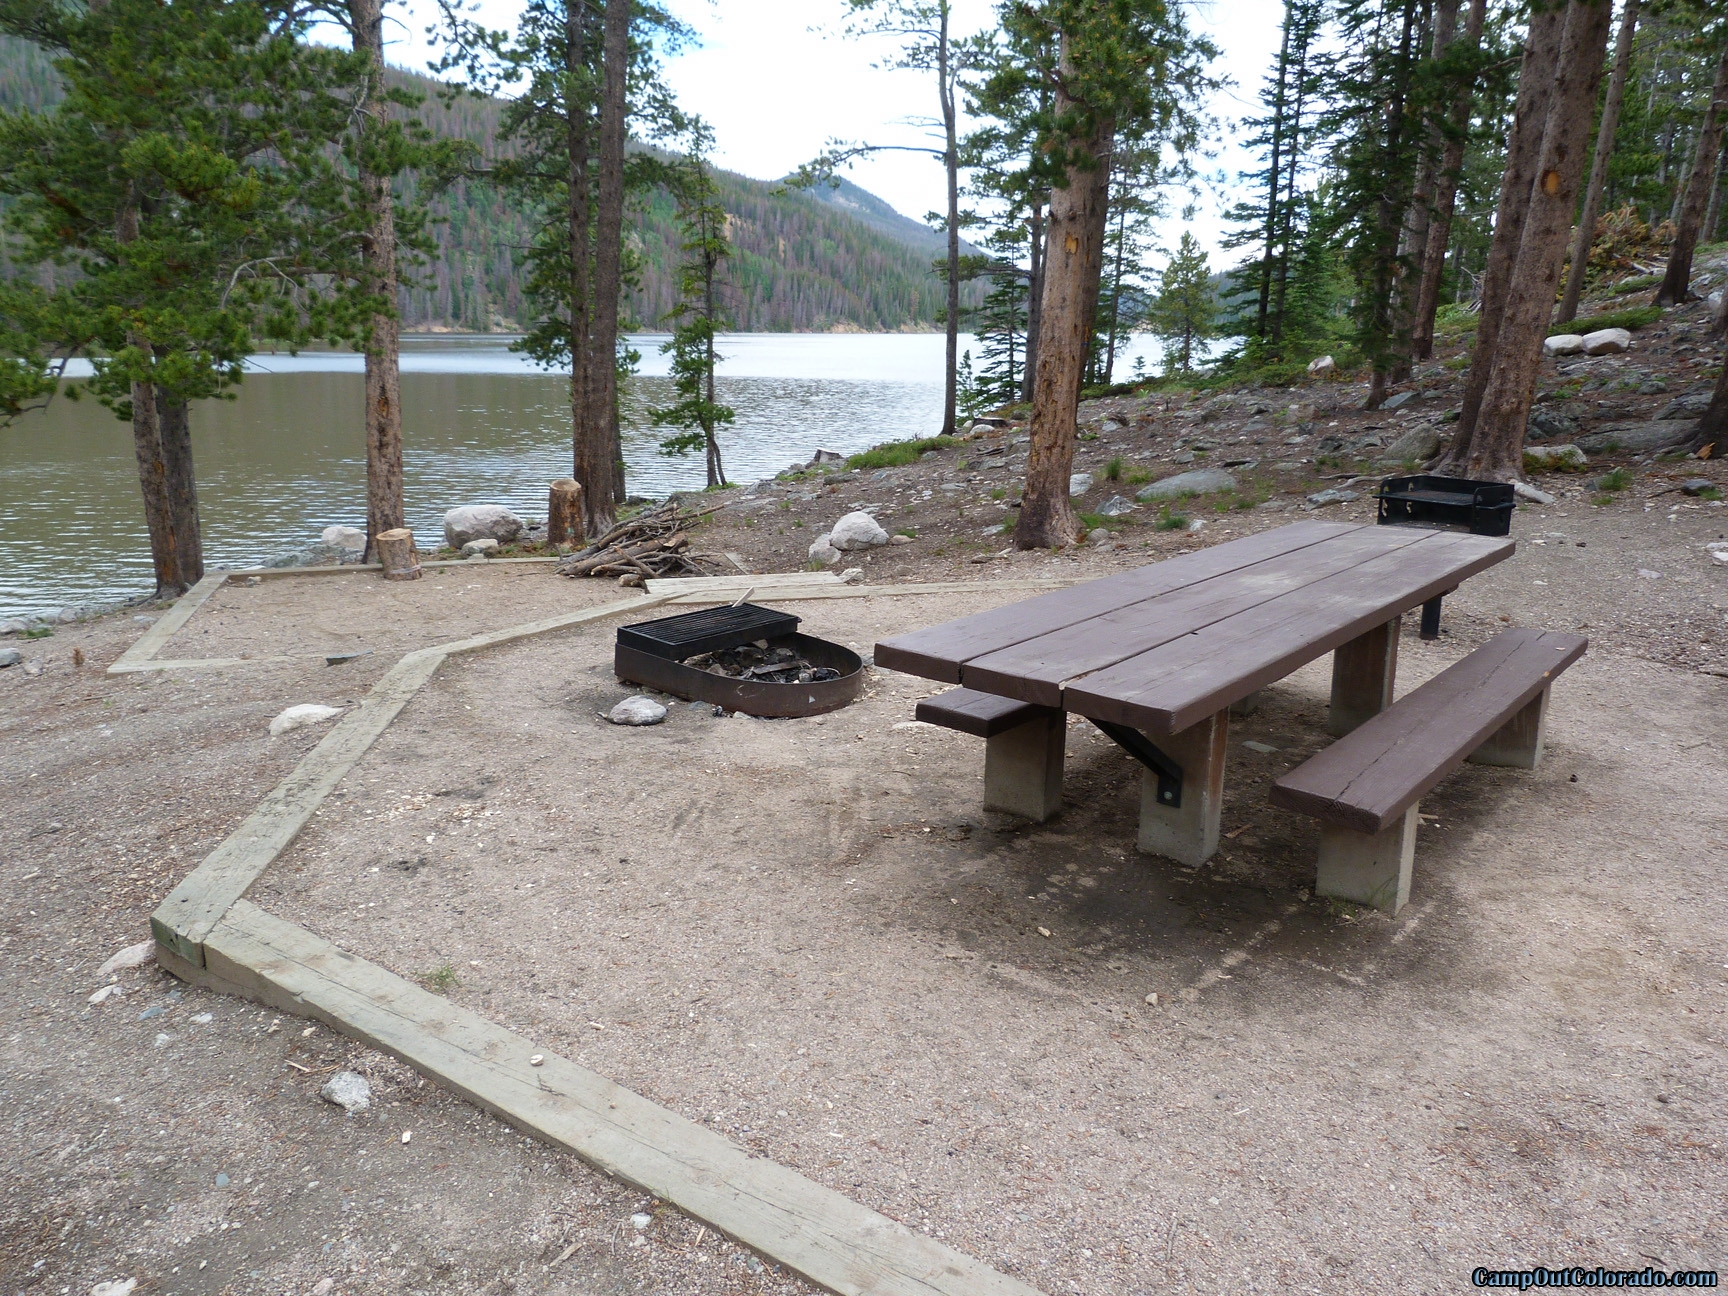 Camping Review of Chambers Lake Campground